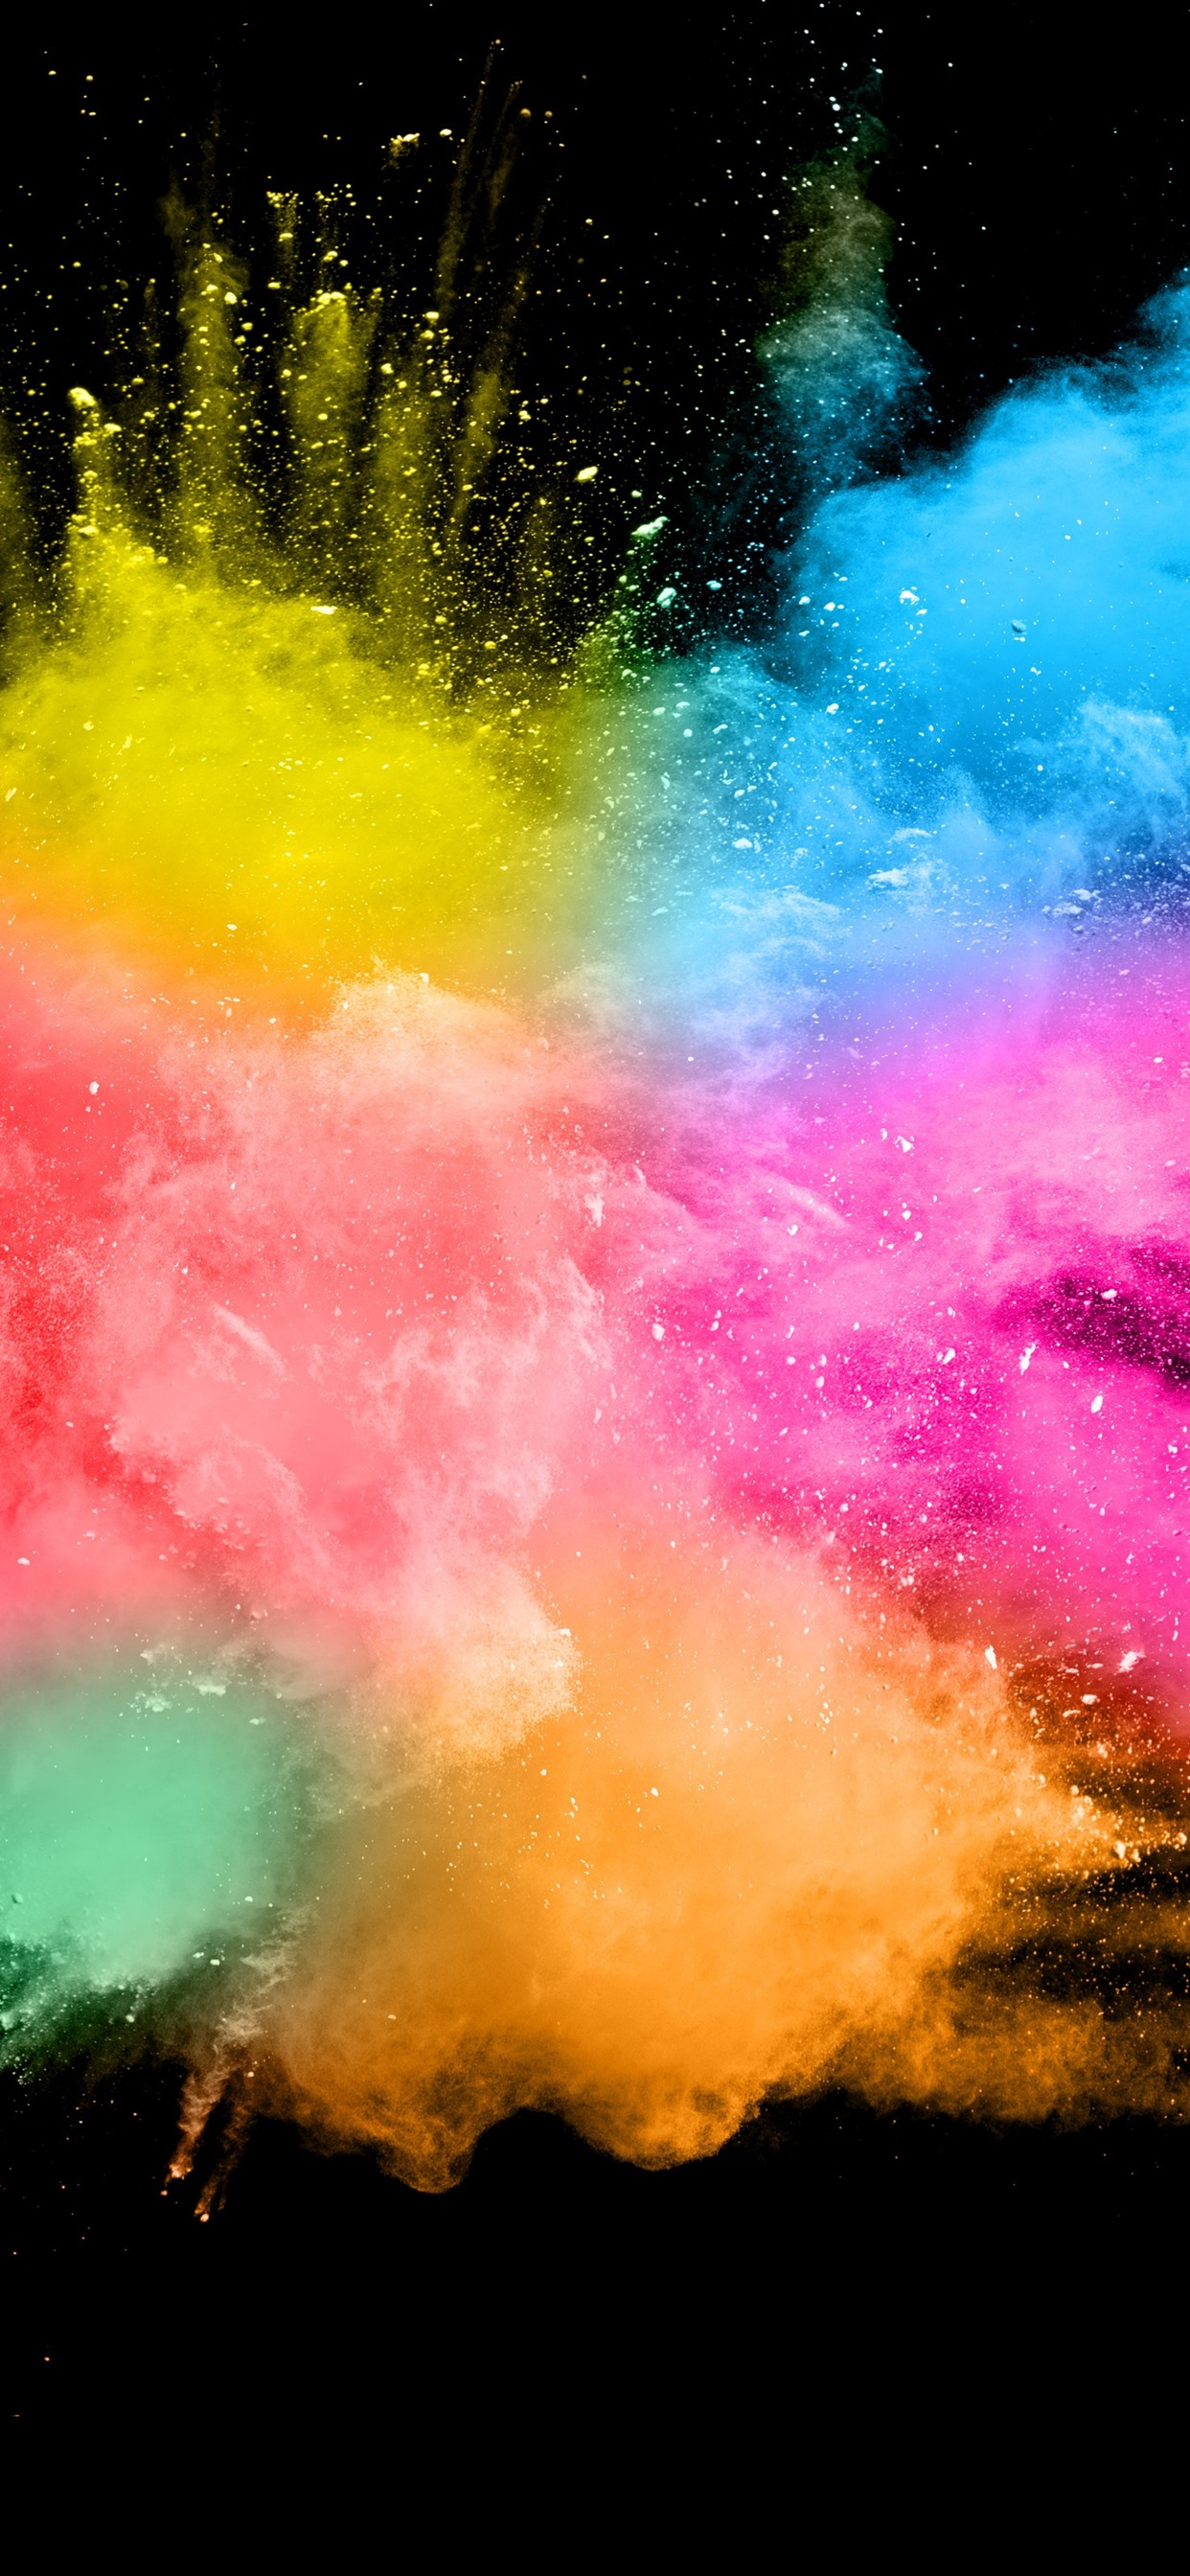 Wallpaper Colorful smoke, splash, abstract, black background 5120x2880 UHD 5K Picture, Image